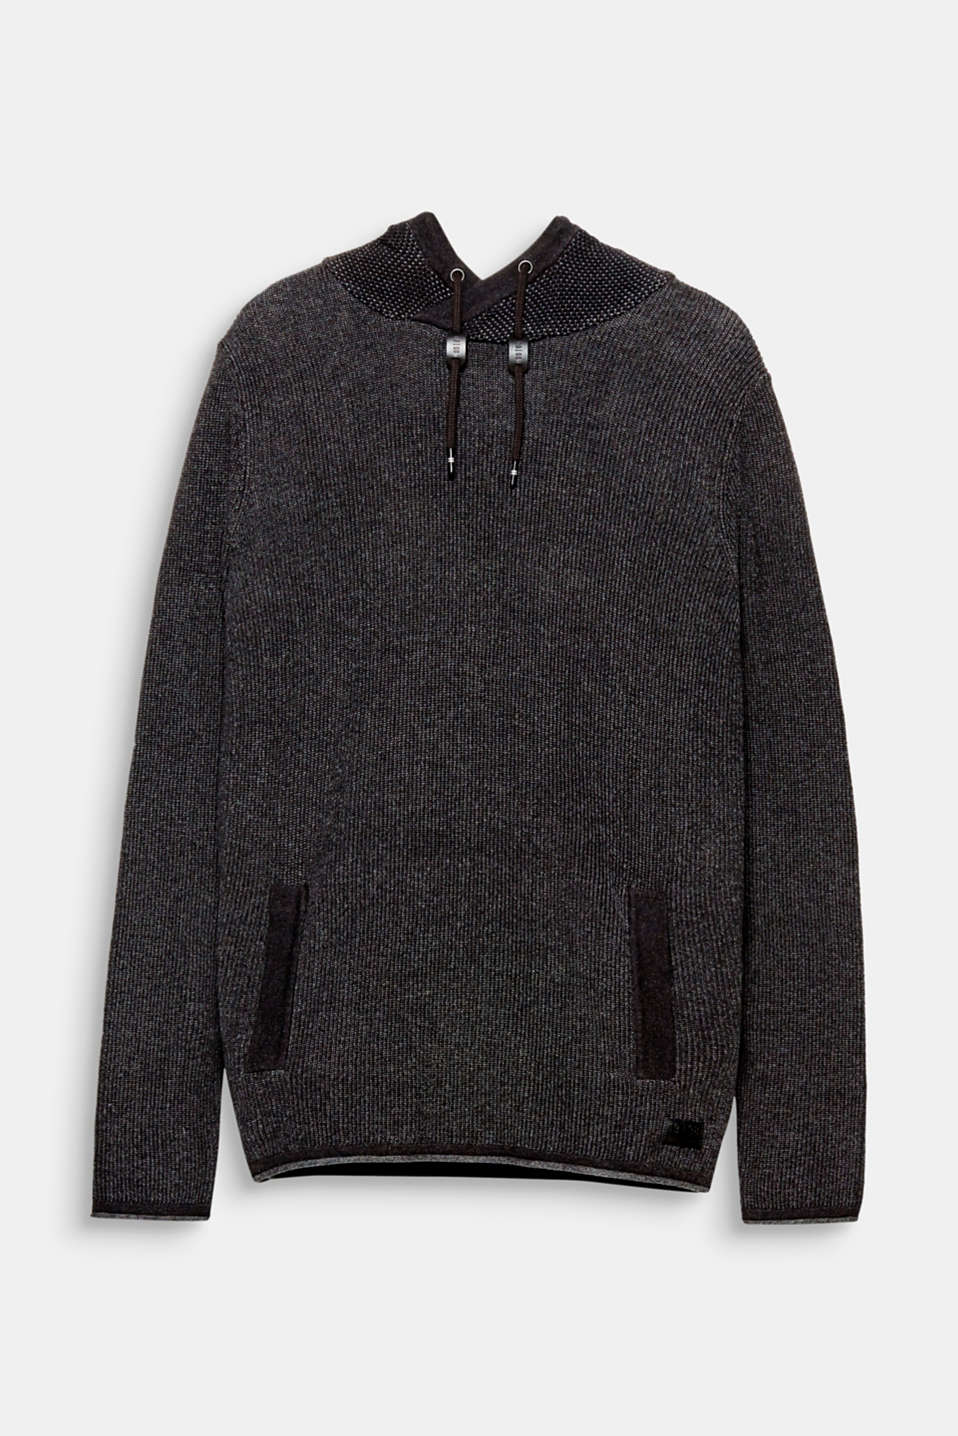 A high-quality casual essential: rib knit hoodie in 100% cotton.